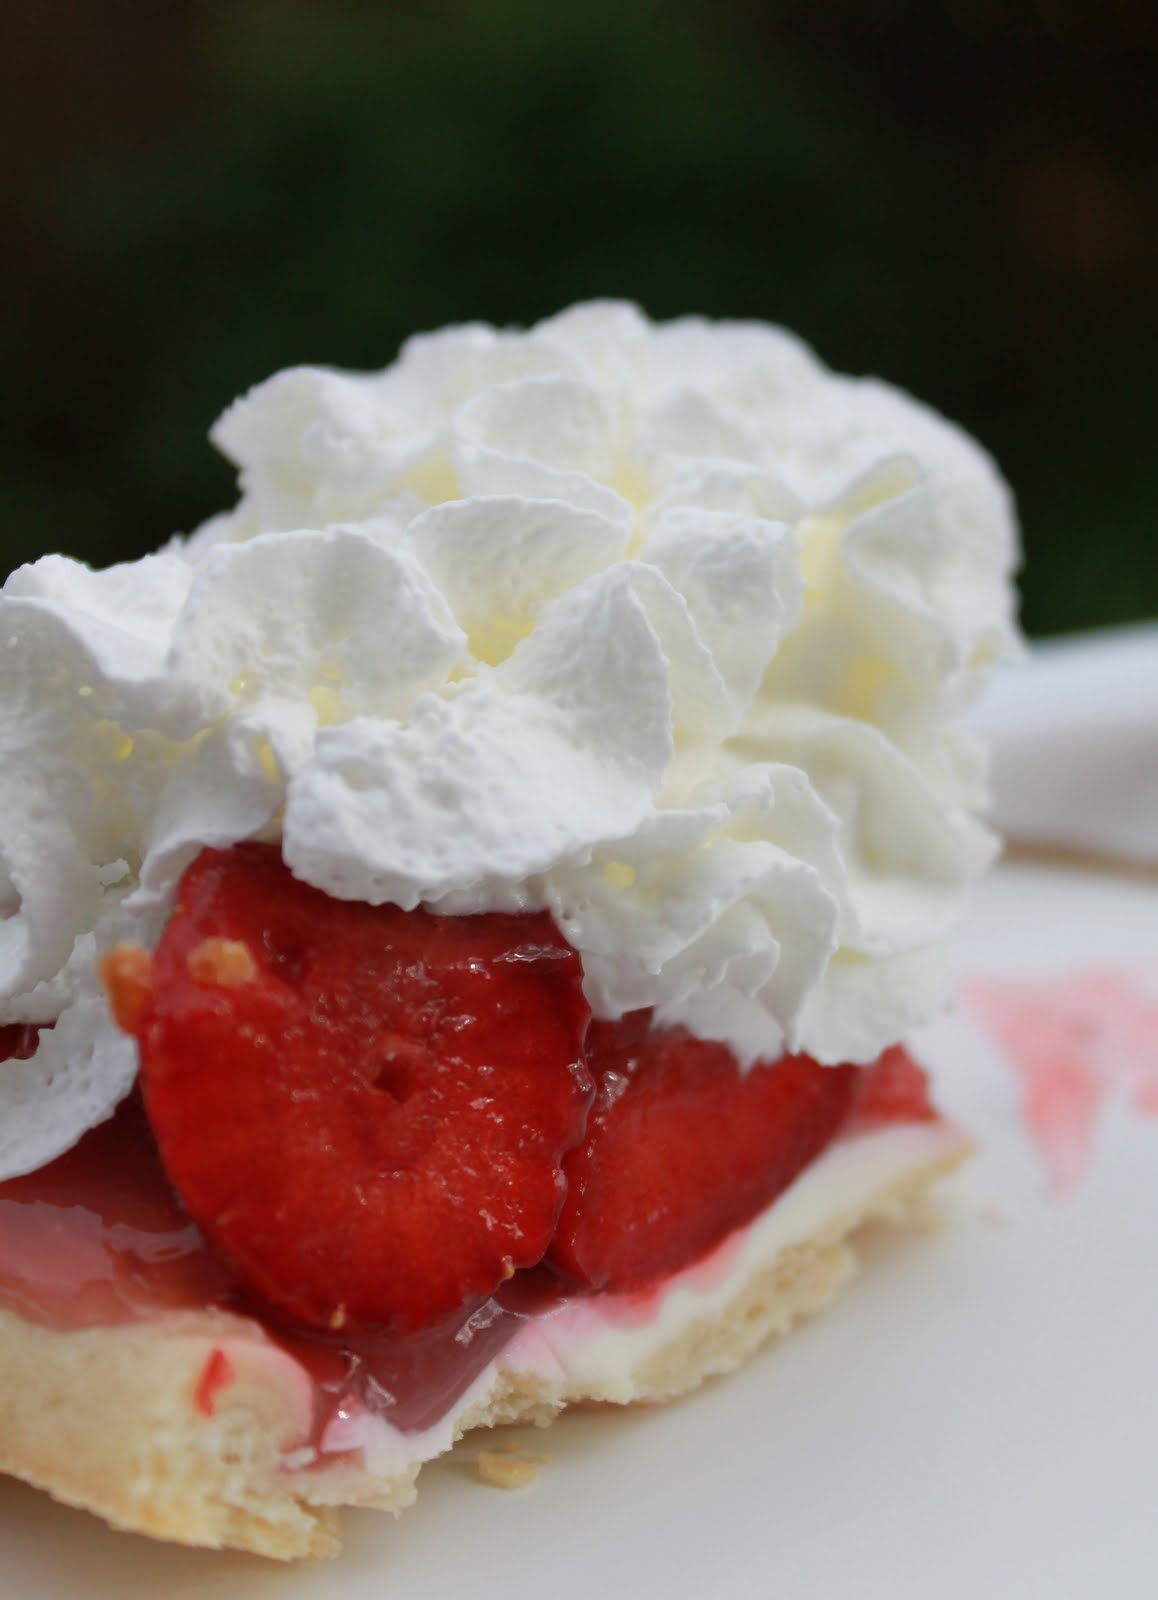 ... pie crust baked 3 to 4 cups strawberries depending on size of pie